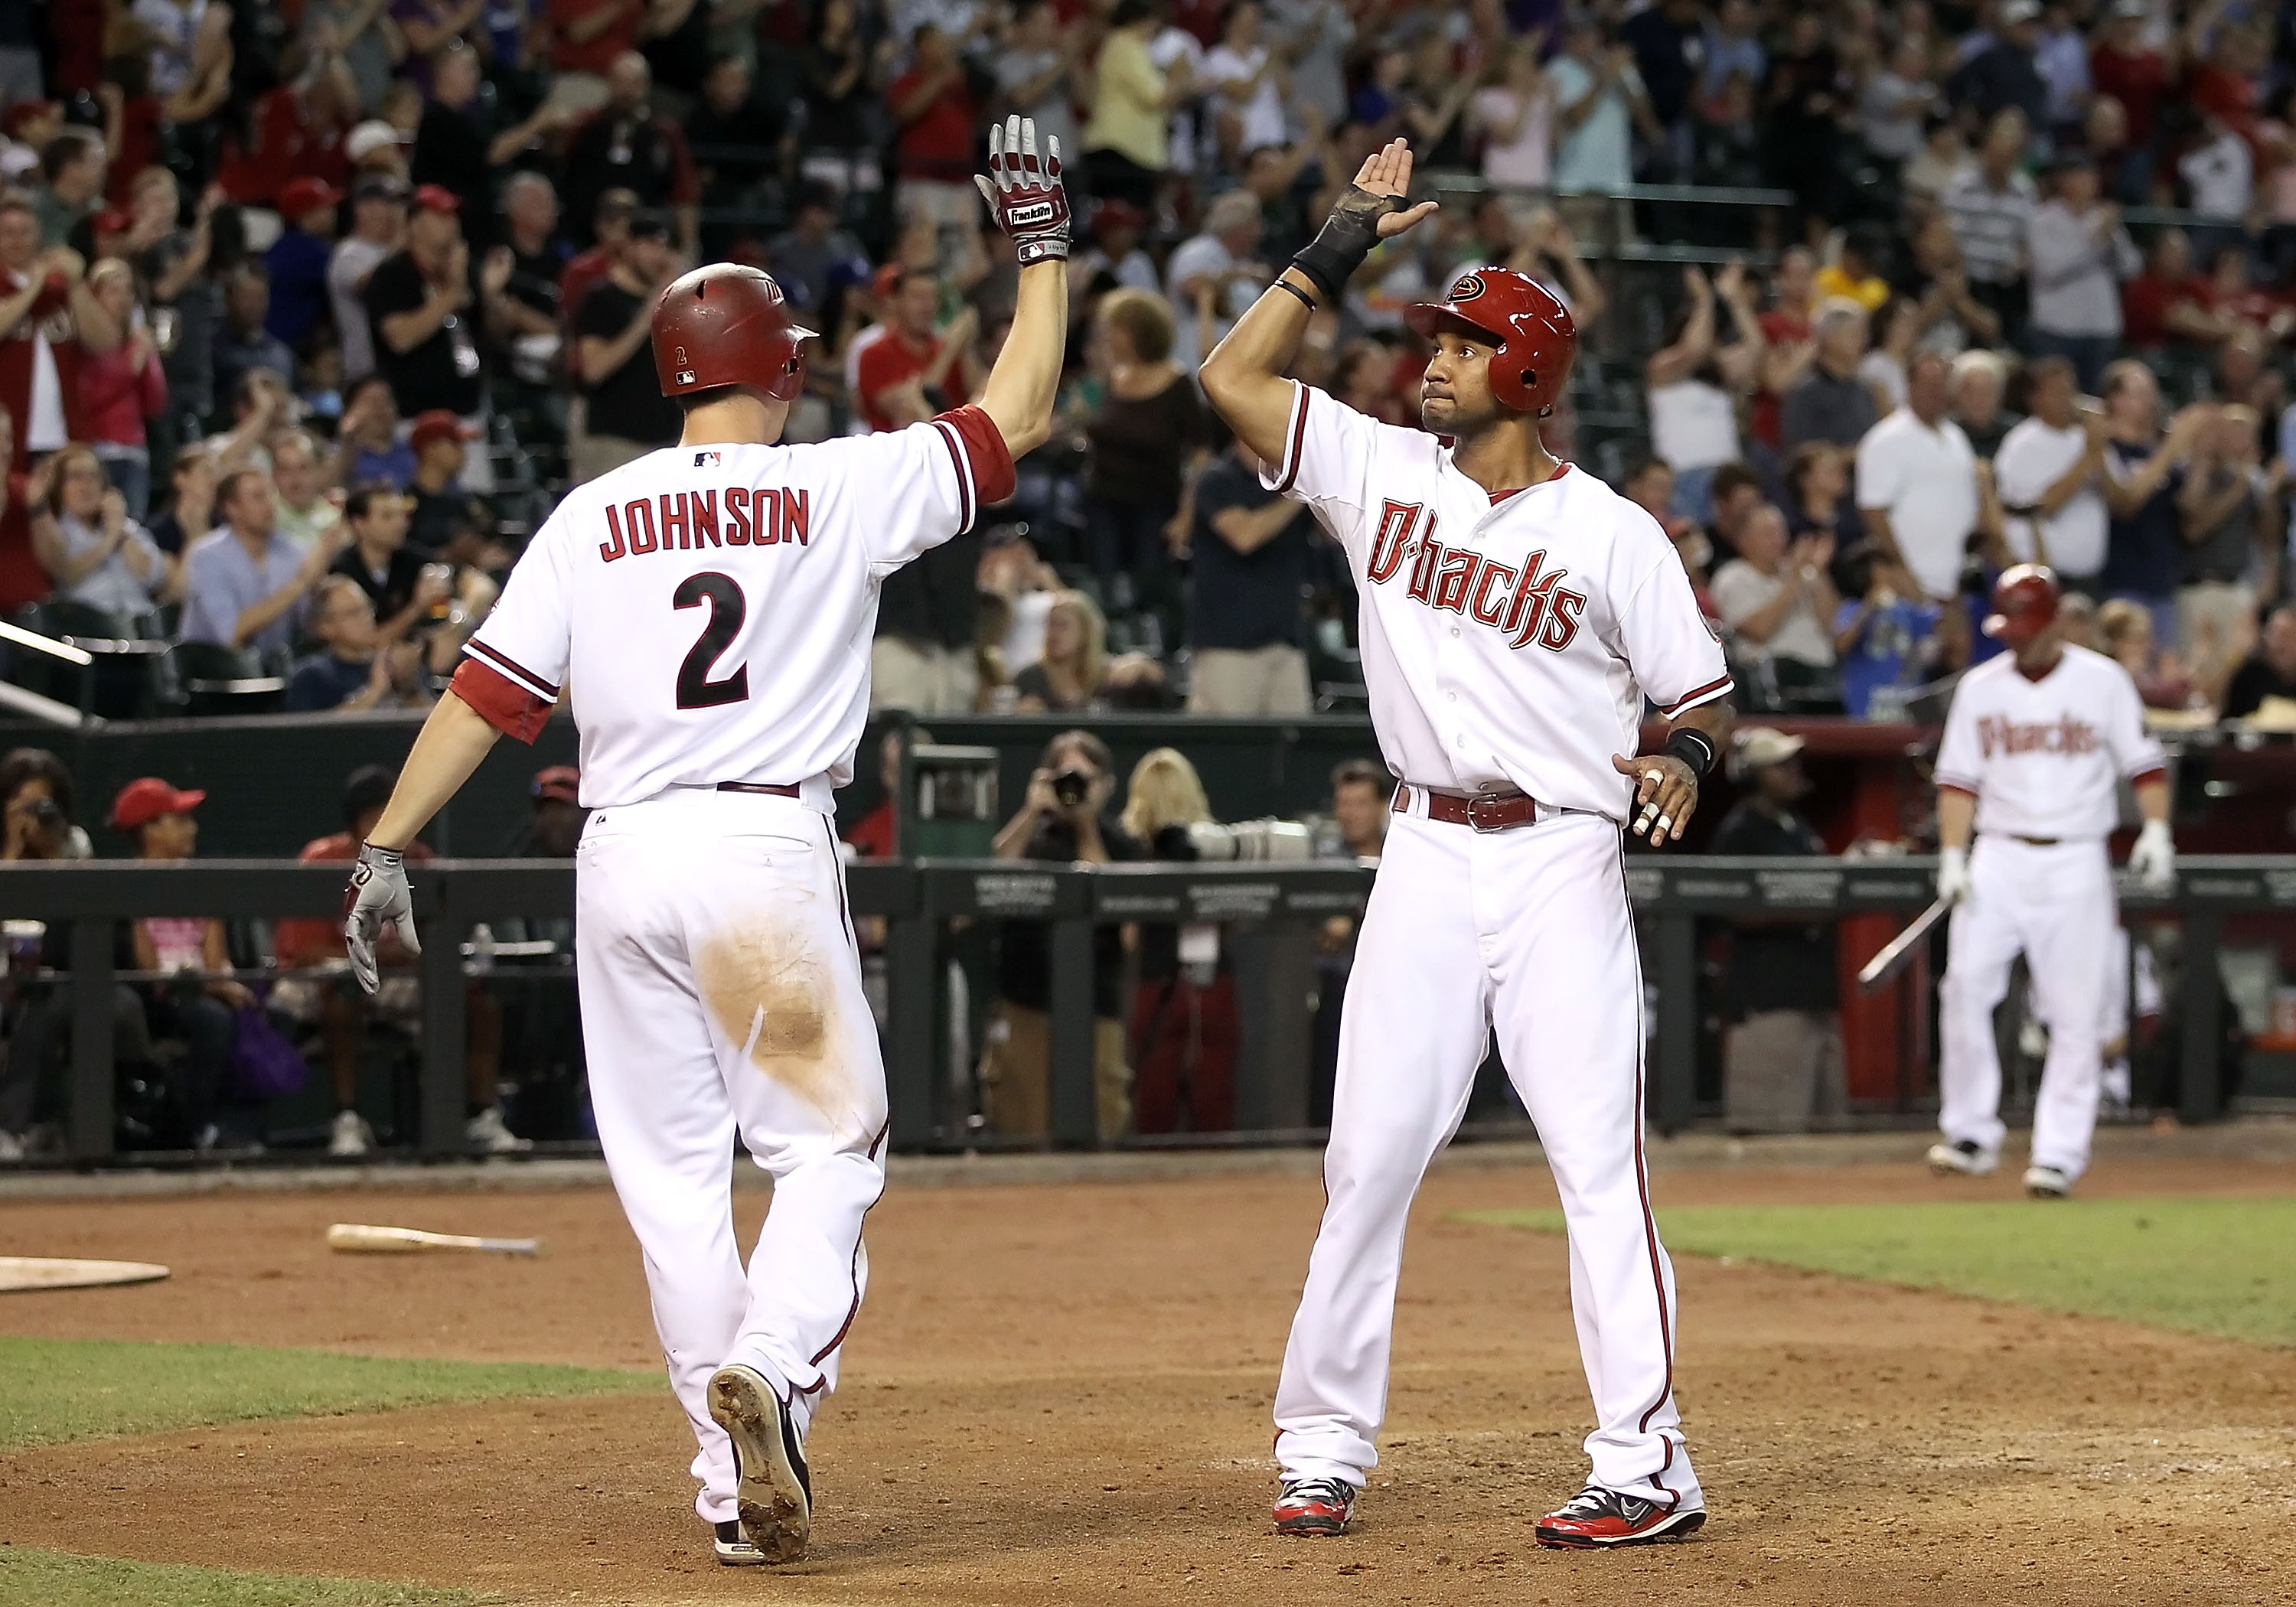 PHOENIX - SEPTEMBER 24:  Chris Young #24 of the Arizona Diamondbacks is congratulated by teammate Kelly Johnson #2 after Young scored a ninth inning run against the Los Angeles Dodgers during the Major League Baseball game at Chase Field on September 24,